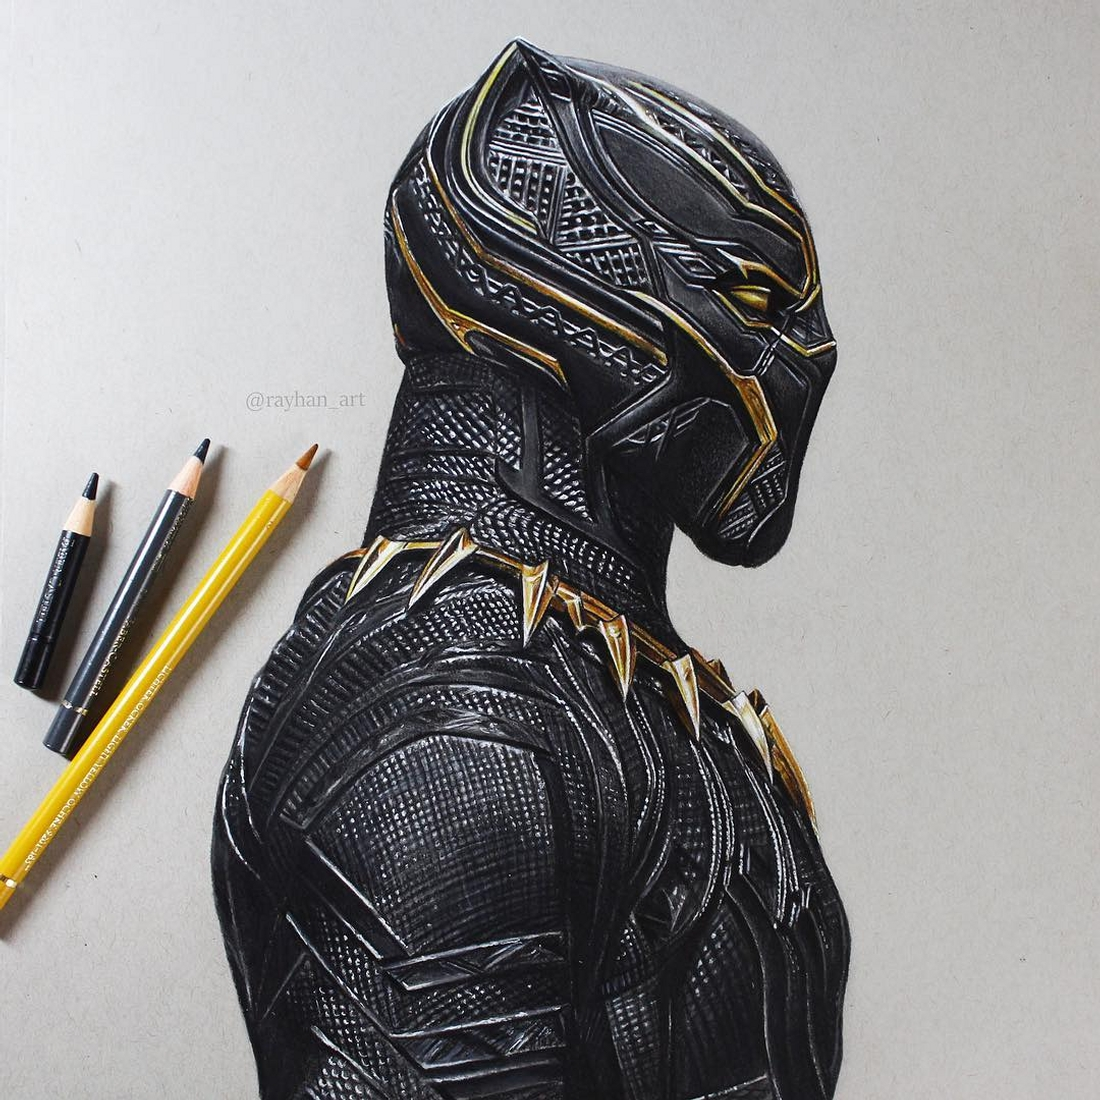 05-Black-Panther-Rayhan-Miah-Movie-Characters-Drawings-and-More-www-designstack-co